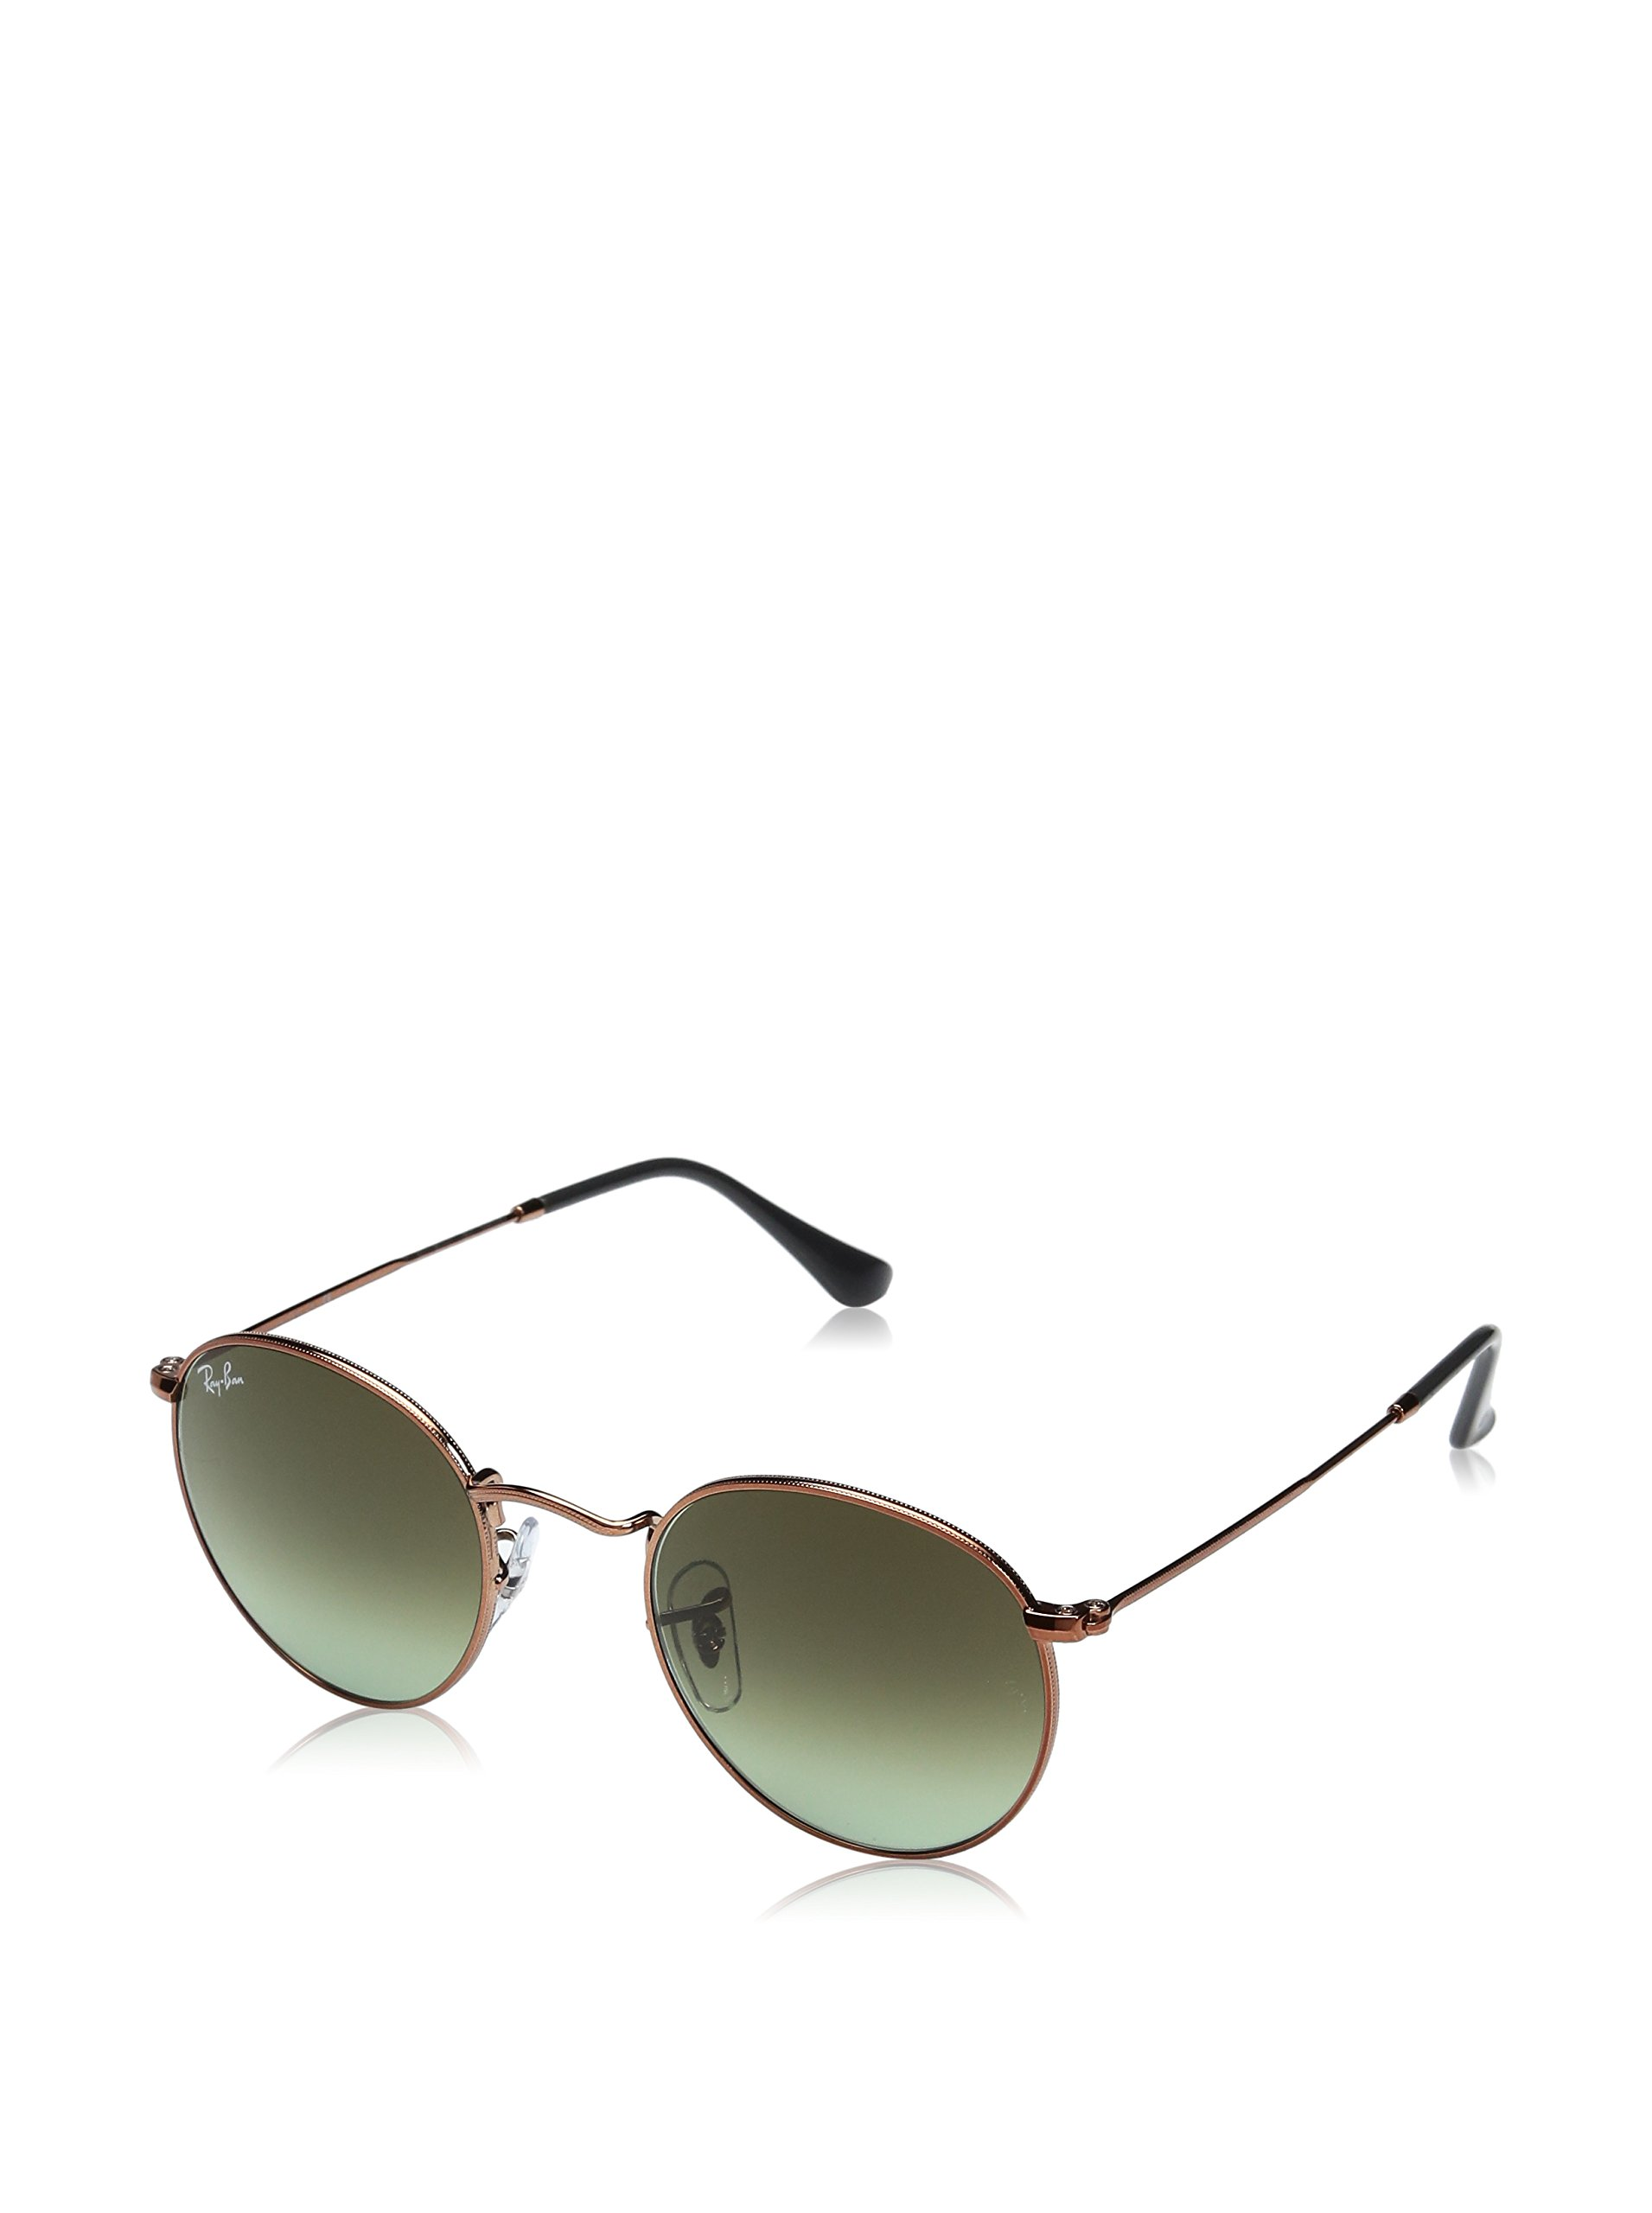 Ray-Ban RB3447 9002A6 Non-Polarized Round Sunglasses, Shiny Medium Bronze/Green Gradient Brown, 47 mm